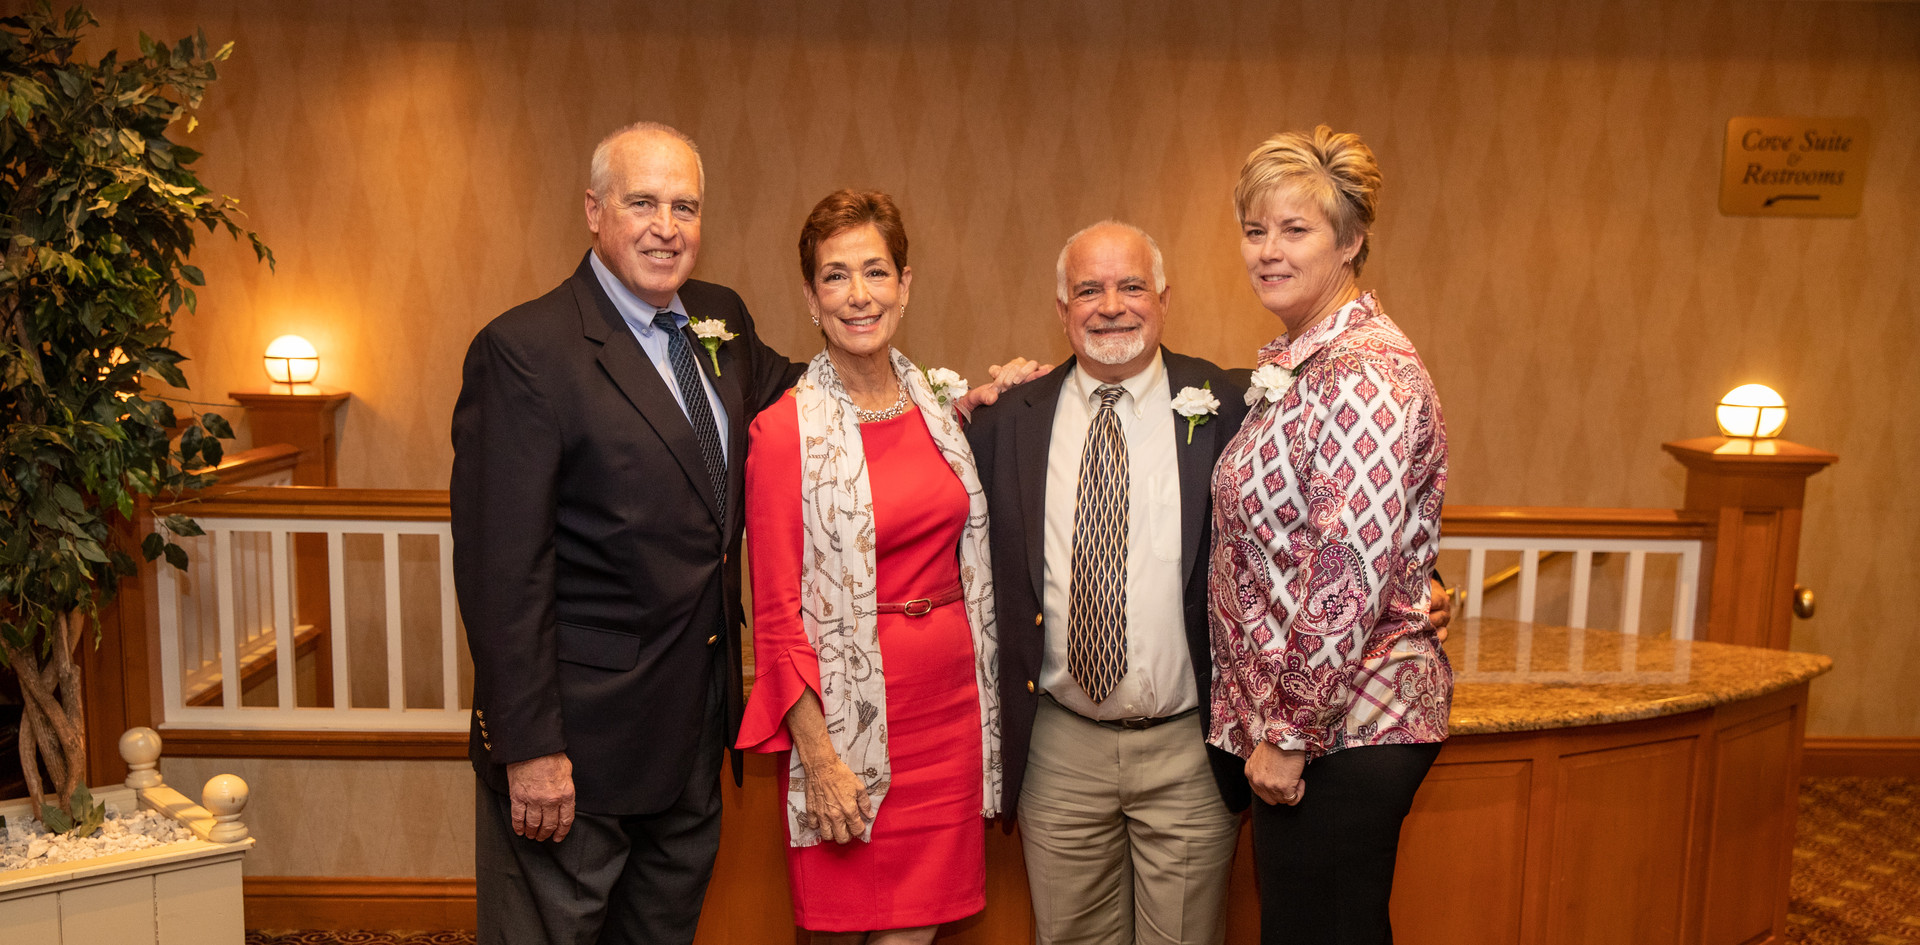 Honorees Jeff Spahr, Maria Marino, Steve Annunziato, and Missy Oman.  (photo by Josh Molaver)